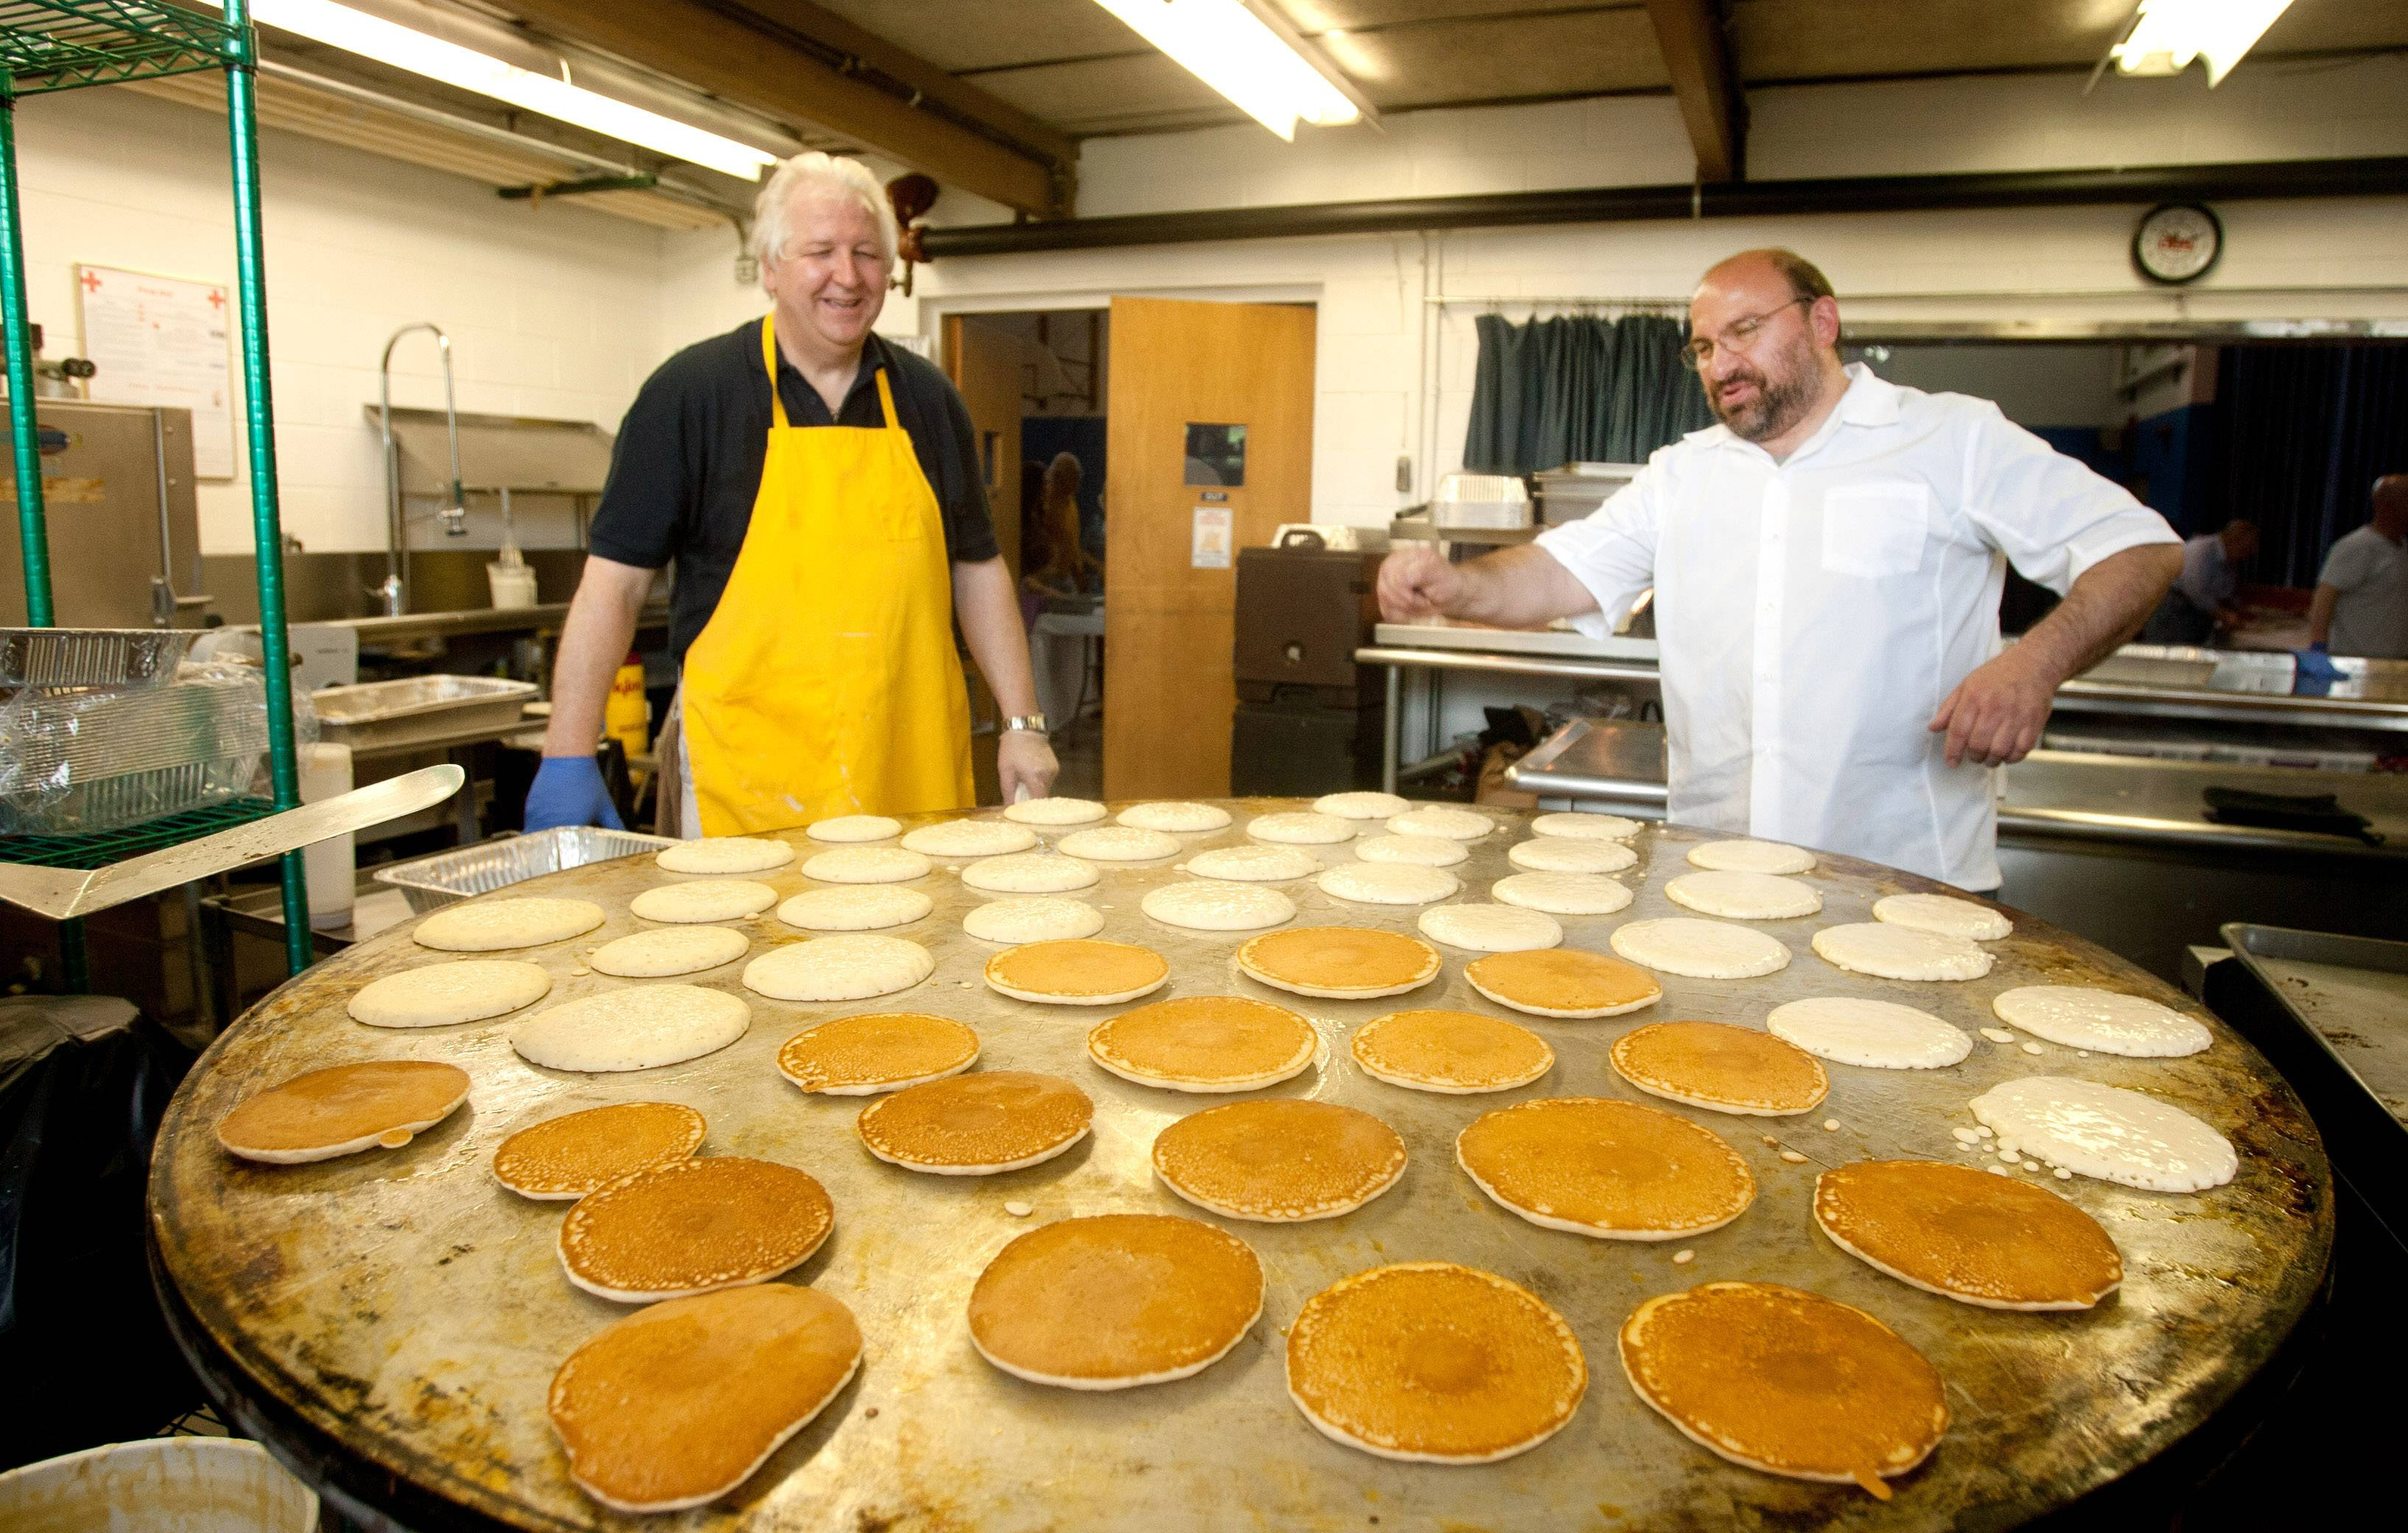 Bob Olender, left, and Bob Conidi, right, chairman of the Itasca Lions Club pancake breakfast, watch a rotating hot griddle cook 48 pancakes at a time during the pancake breakfast in the Saint Luke School gymnasium in Itasca.